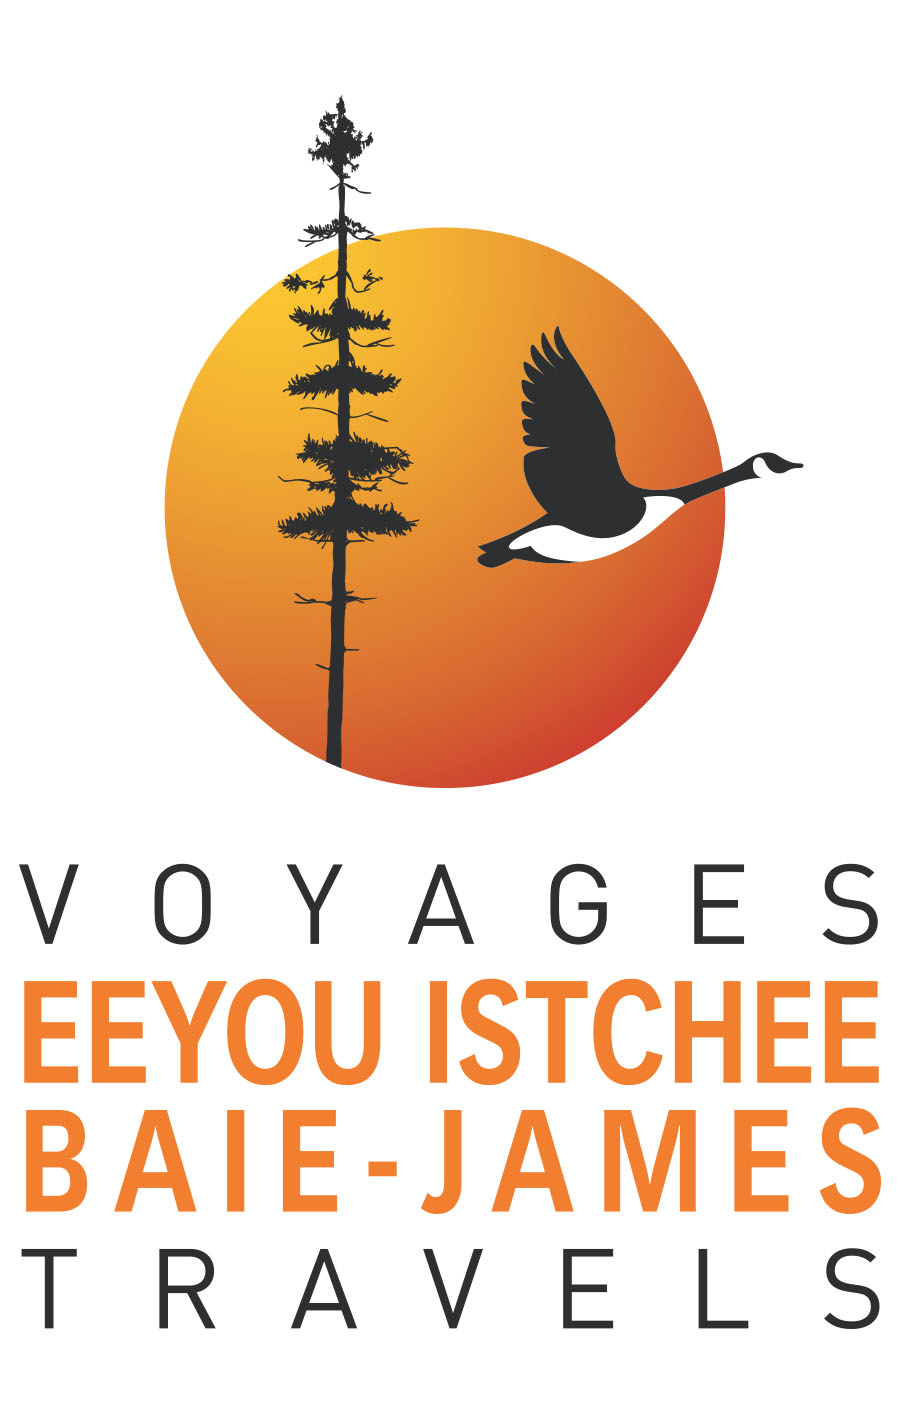 Episode 2 Oujé-Bougoumou - Voyages Eeyou Istchee Baie-James Travel